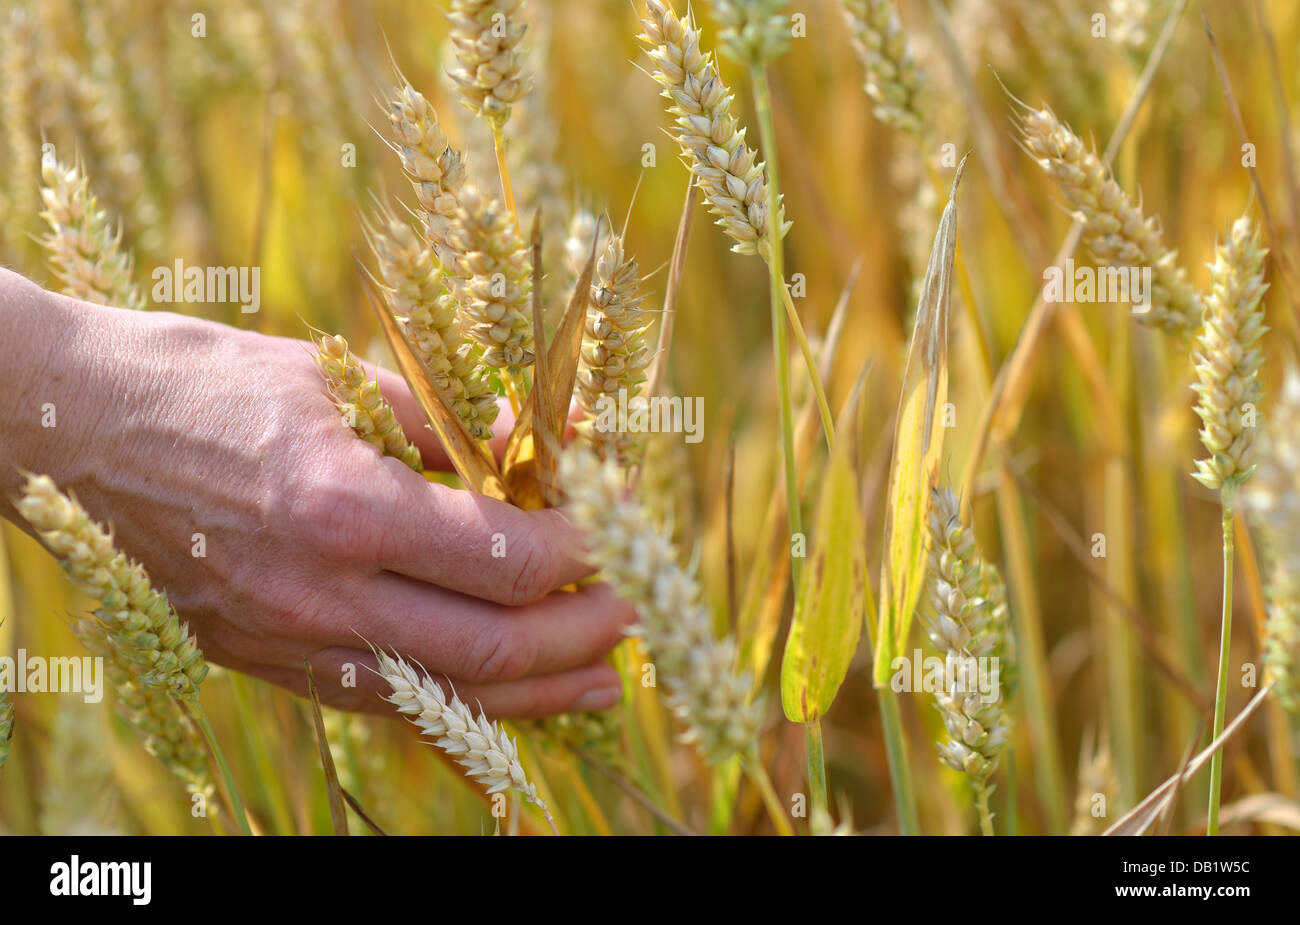 A woman's hand plucking ears of wheat - Stock Image